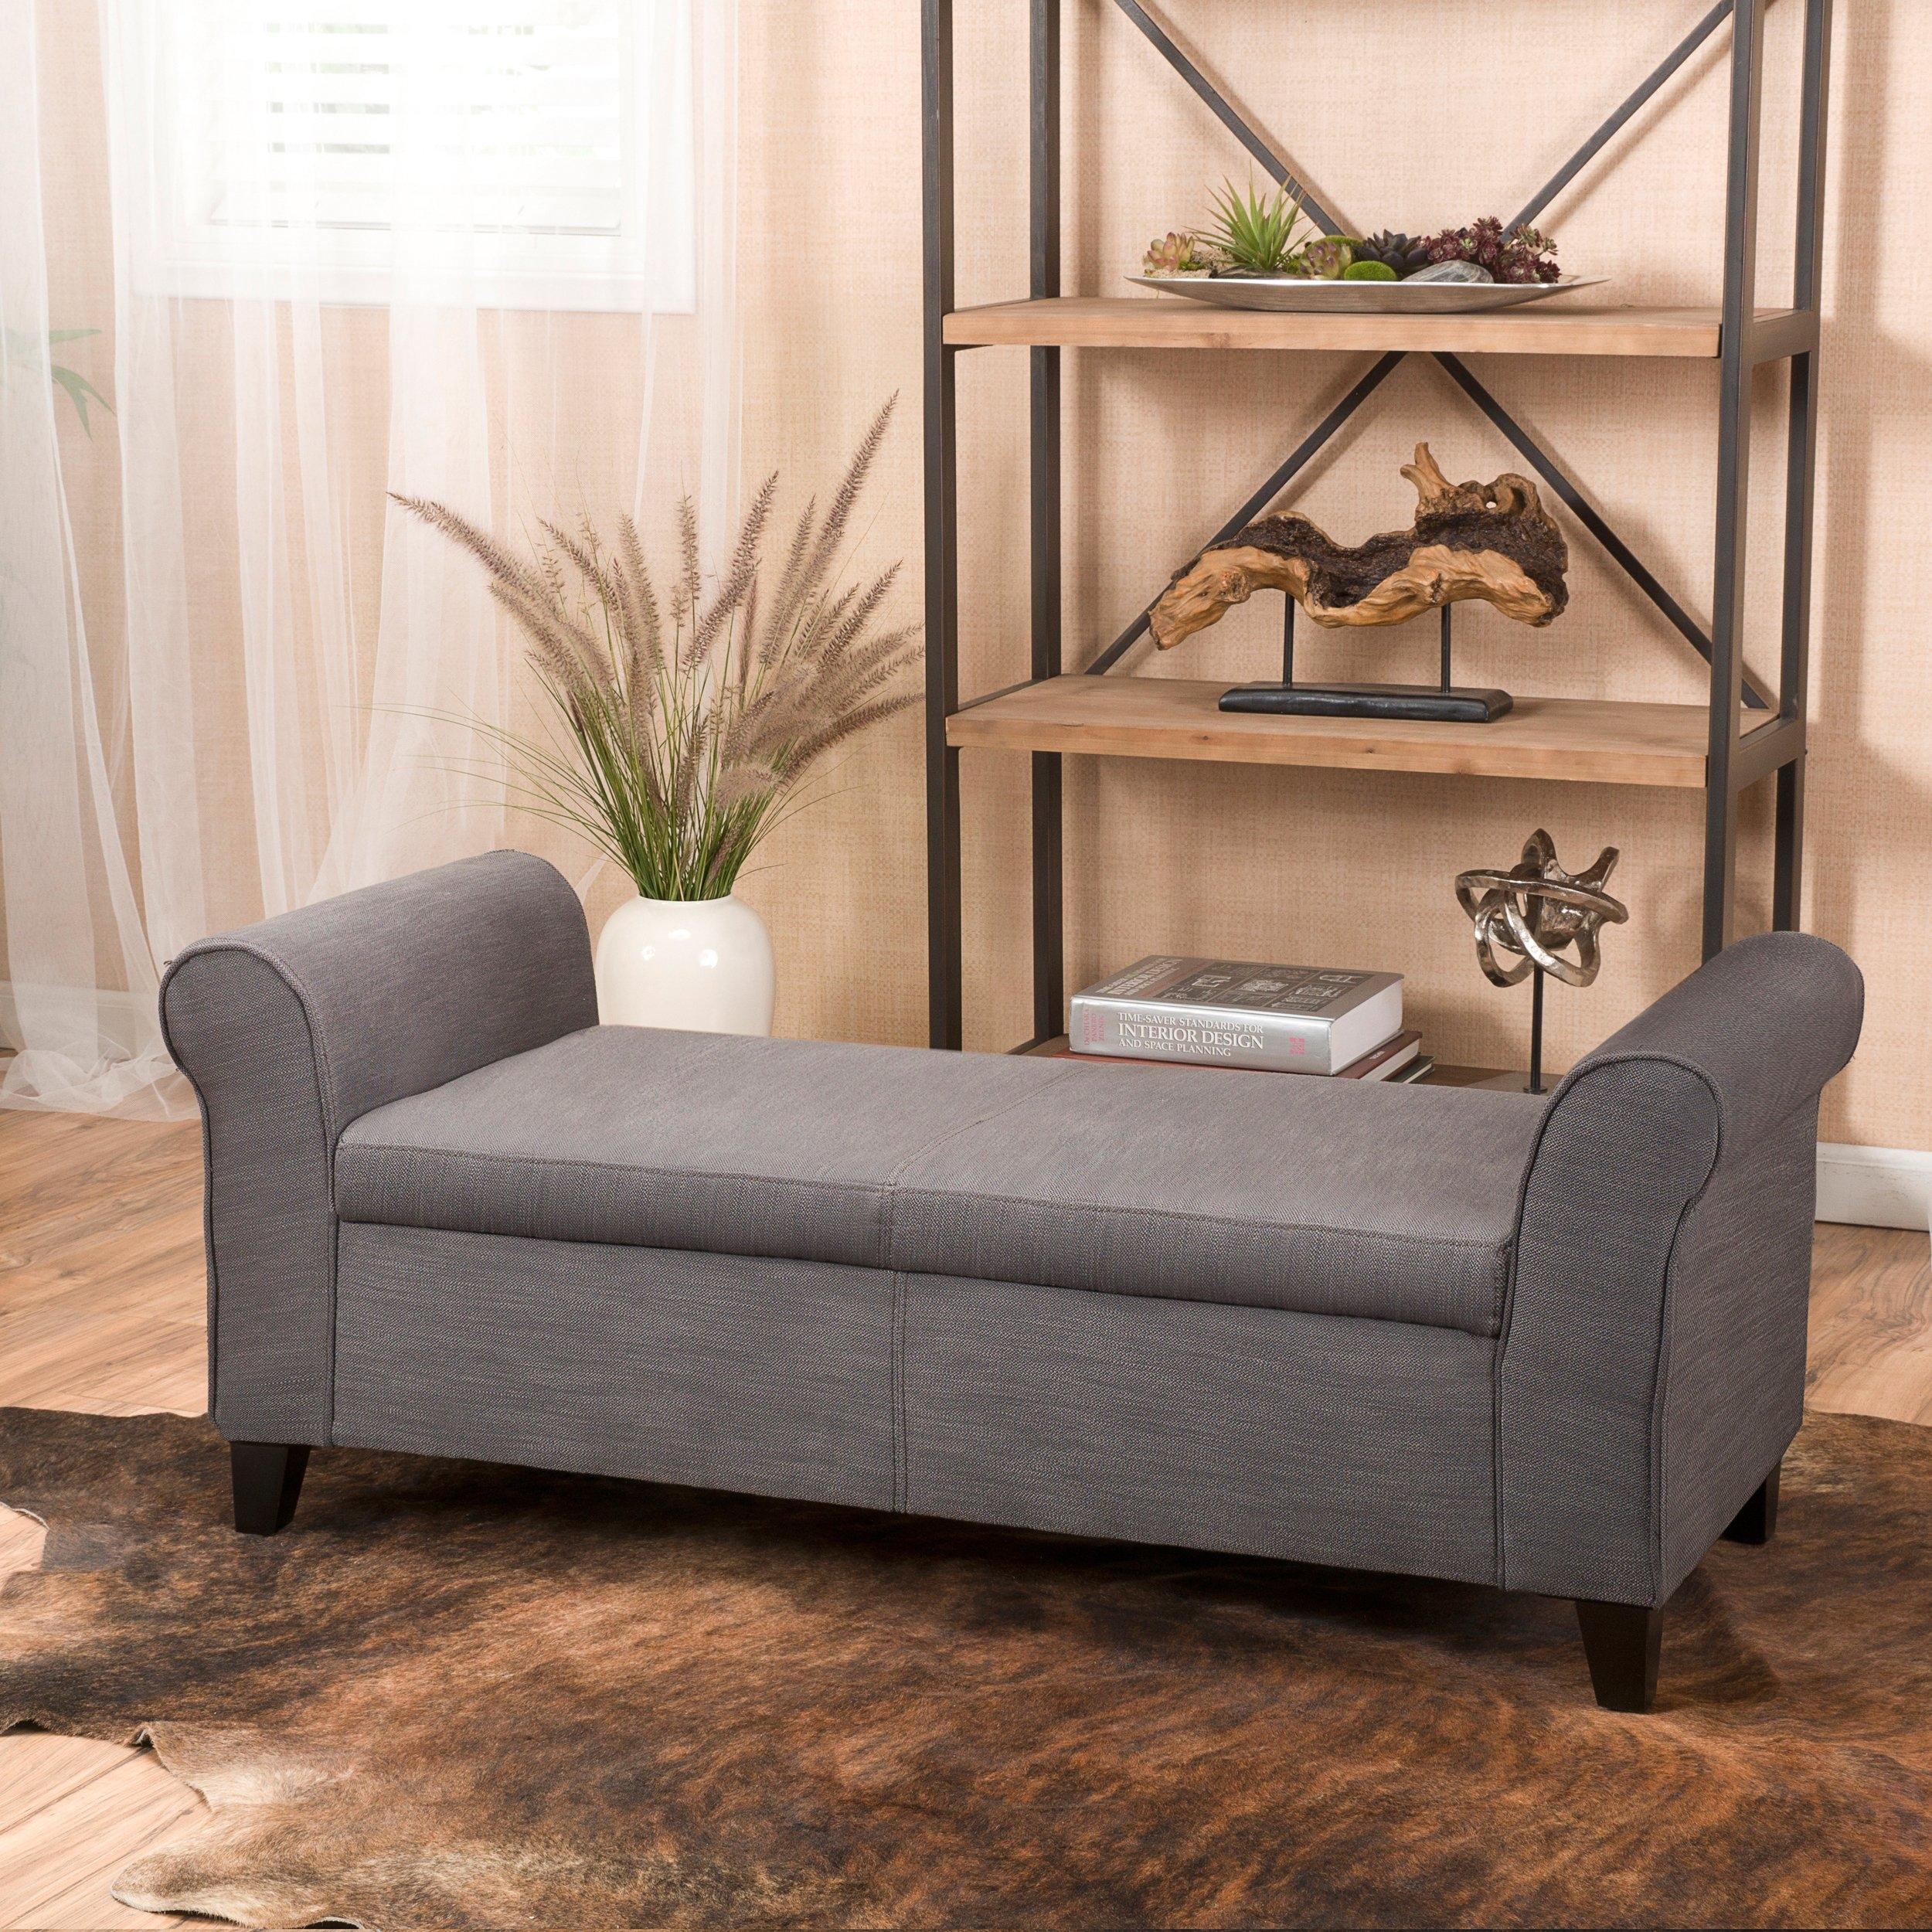 Danbury Grey Fabric Armed Storage Ottoman Bench (1)